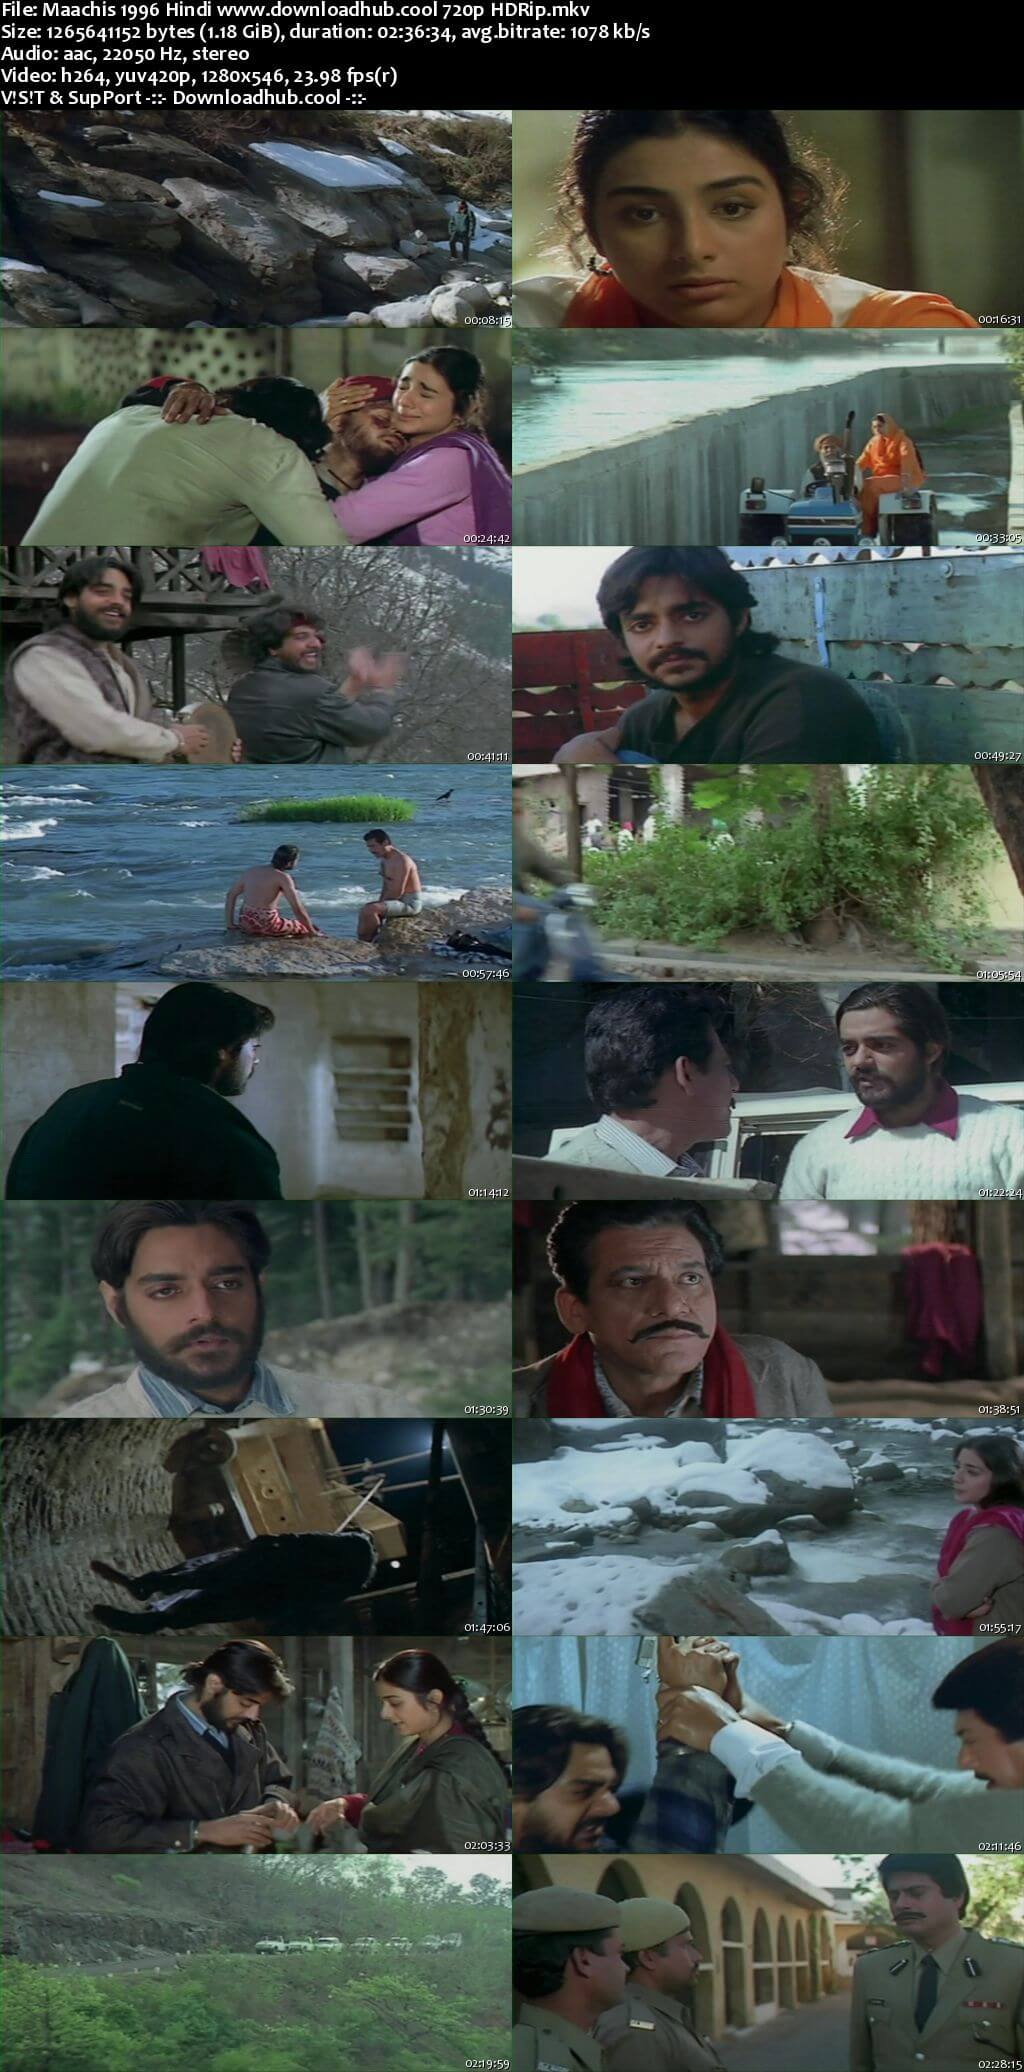 Maachis 1996 Hindi 720p HDRip x264